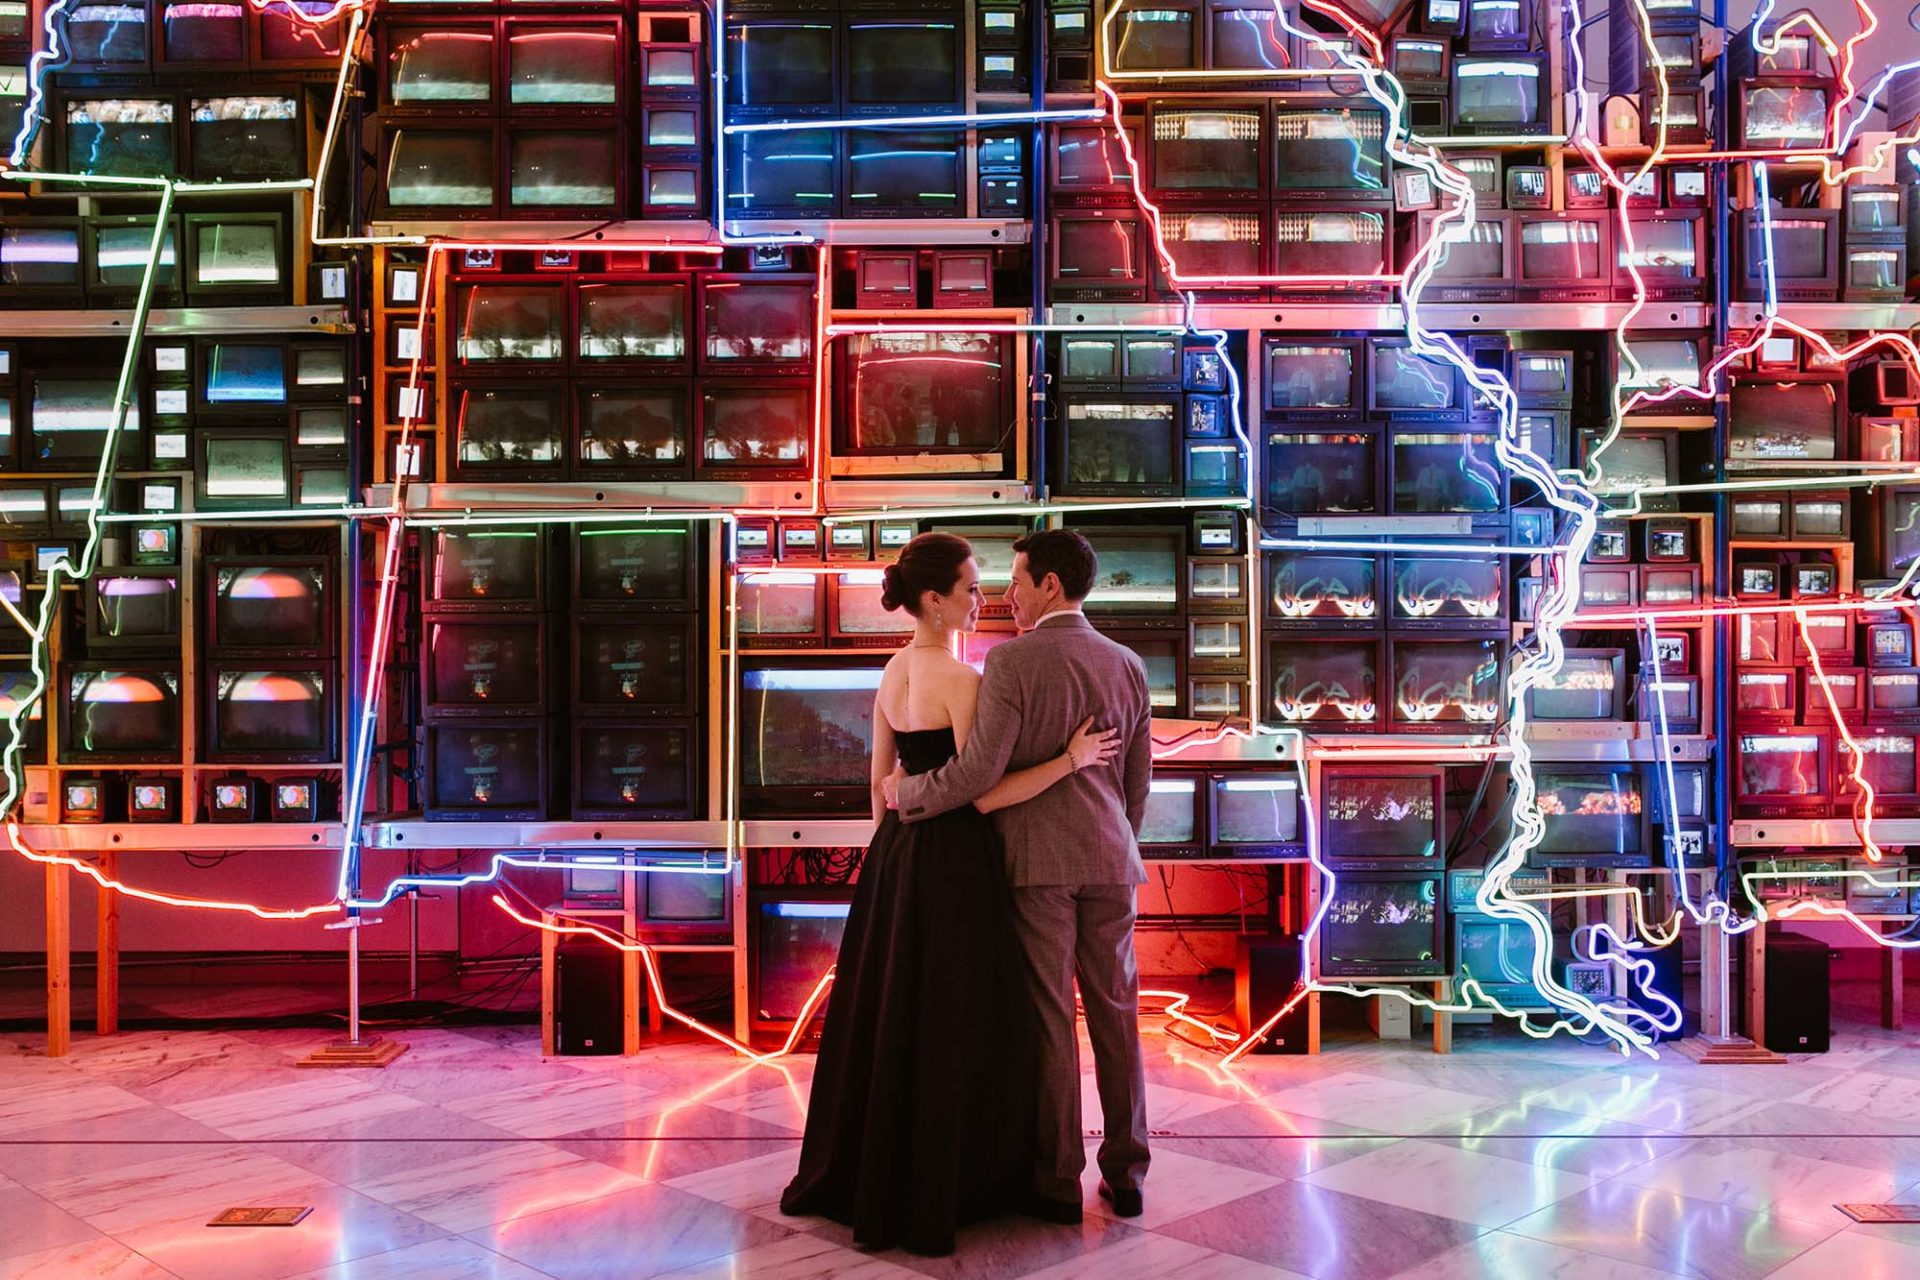 a couple stands in front of a neon sign installation of a map of the USA overlaying old TVs. Rachel Couch for Pop! Wed Co.